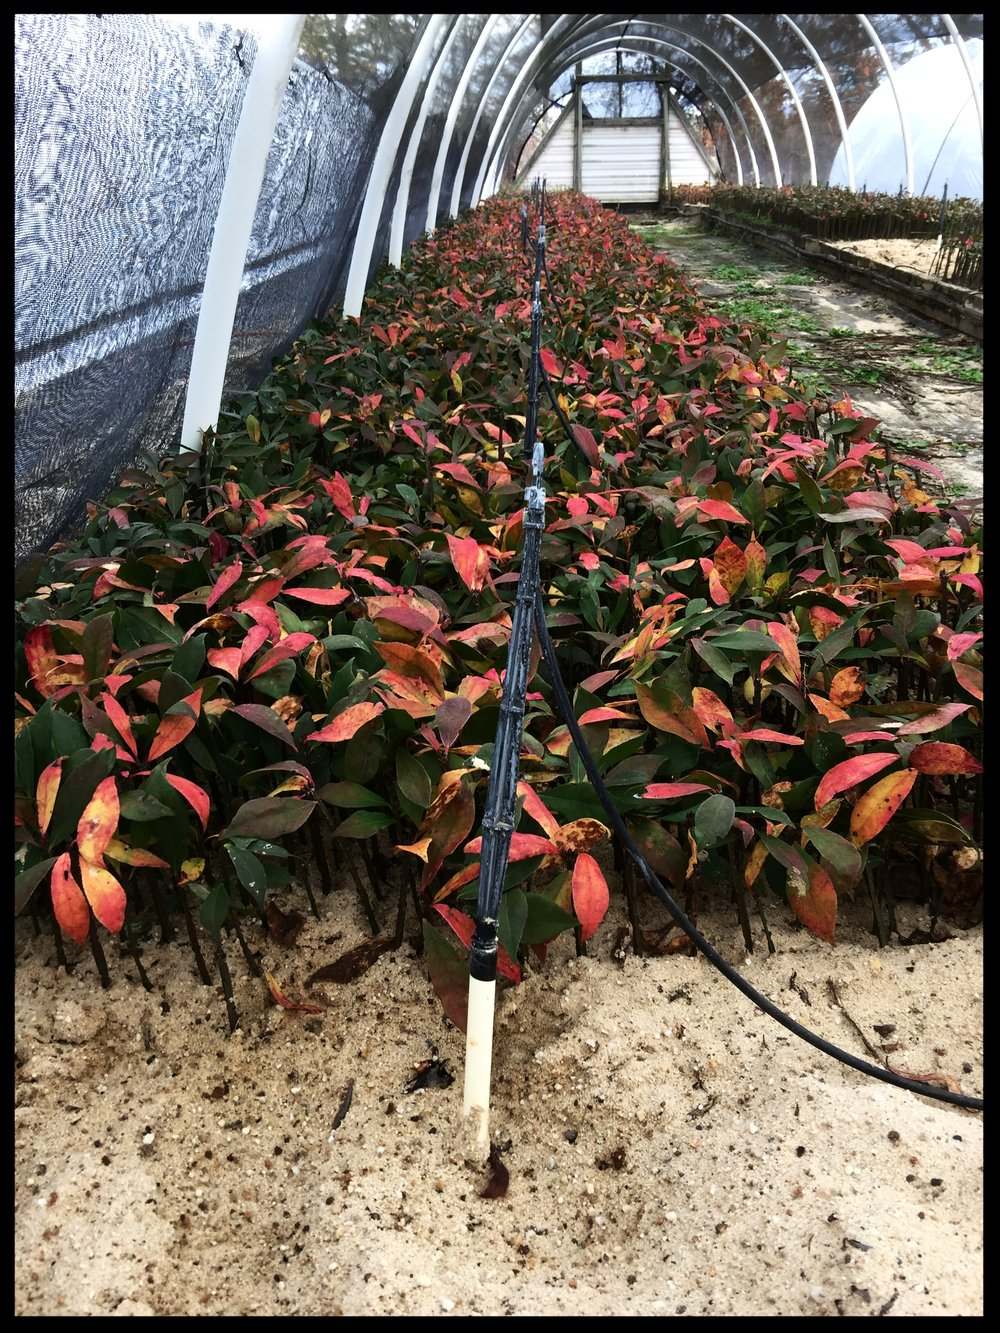 Euonymus Alatus Compactus 'Dwarf Burning Bush' transitioning into fall foliage. Sand bed grown.